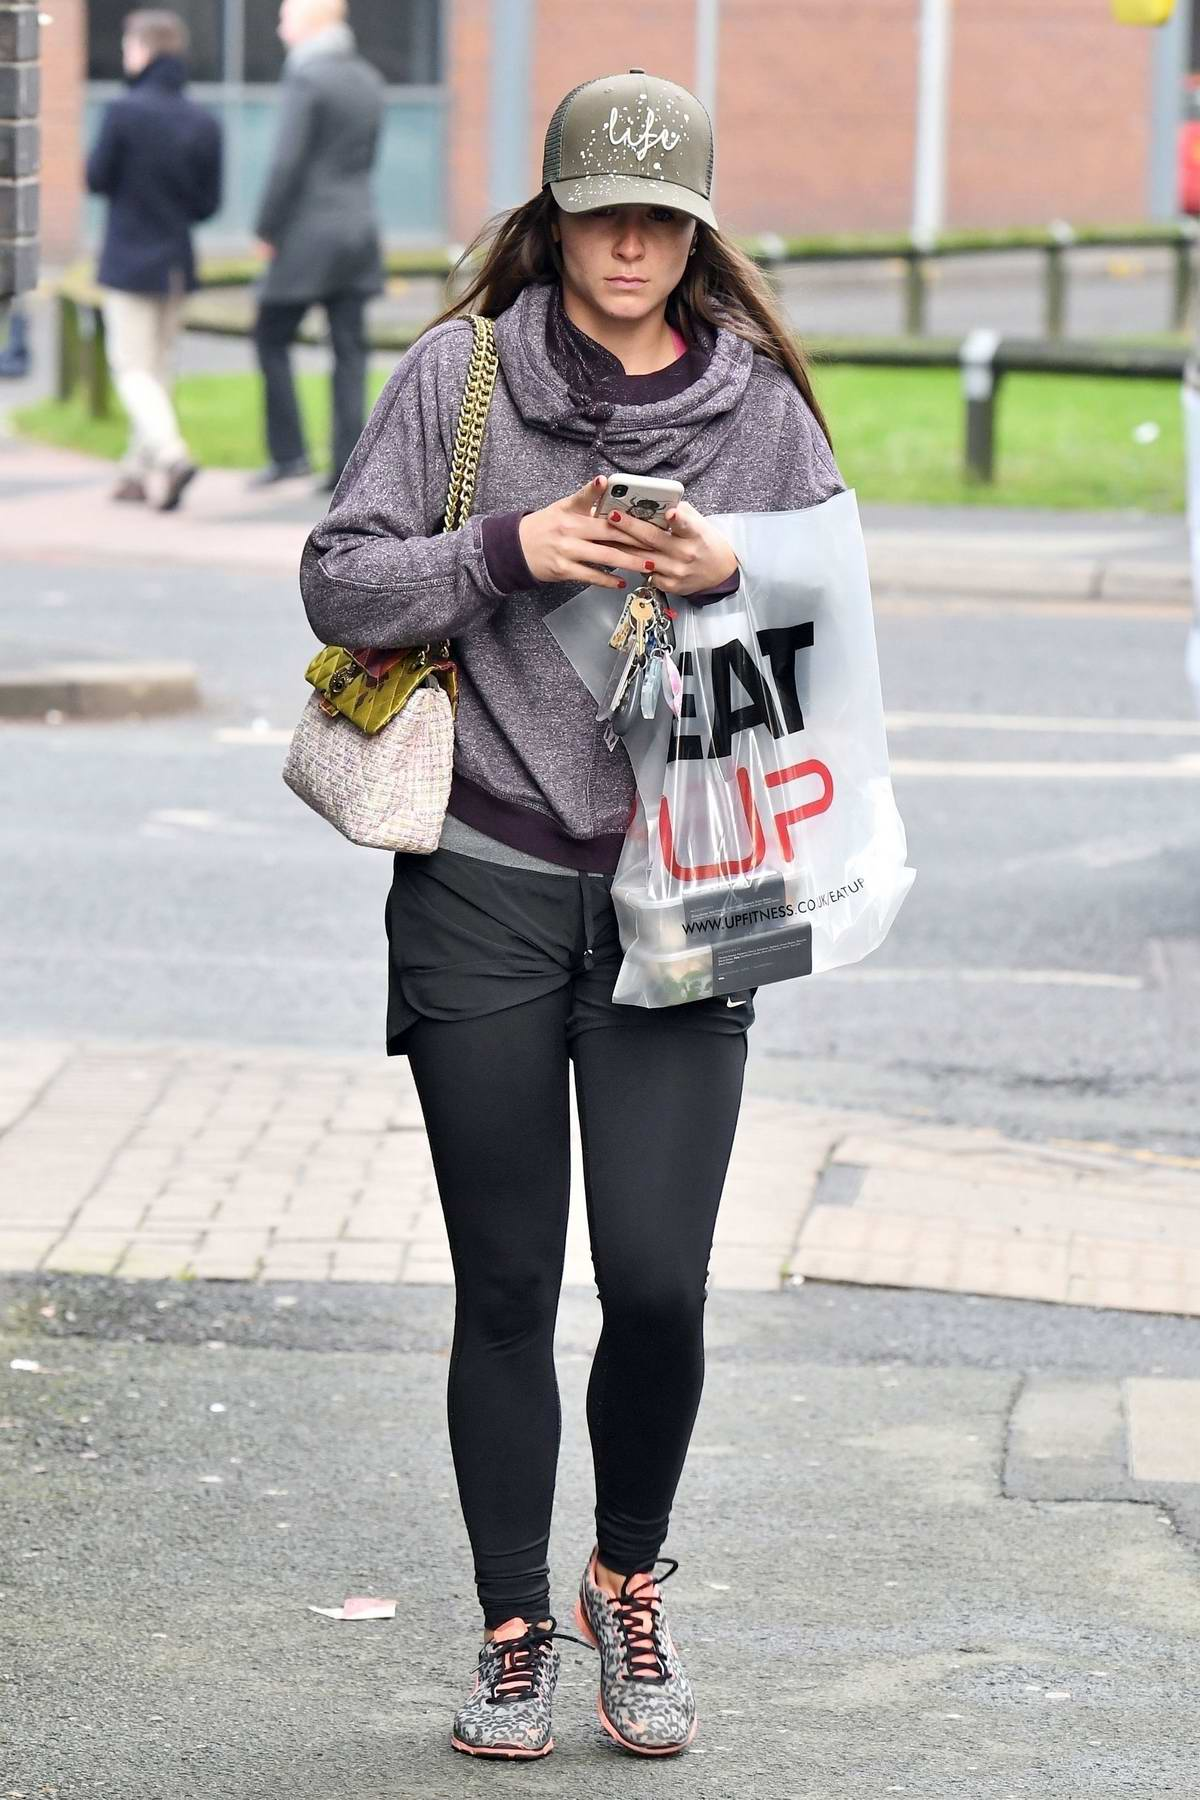 Brooke Vincent spotted as she leaves UPT Fitness in Manchester, UK